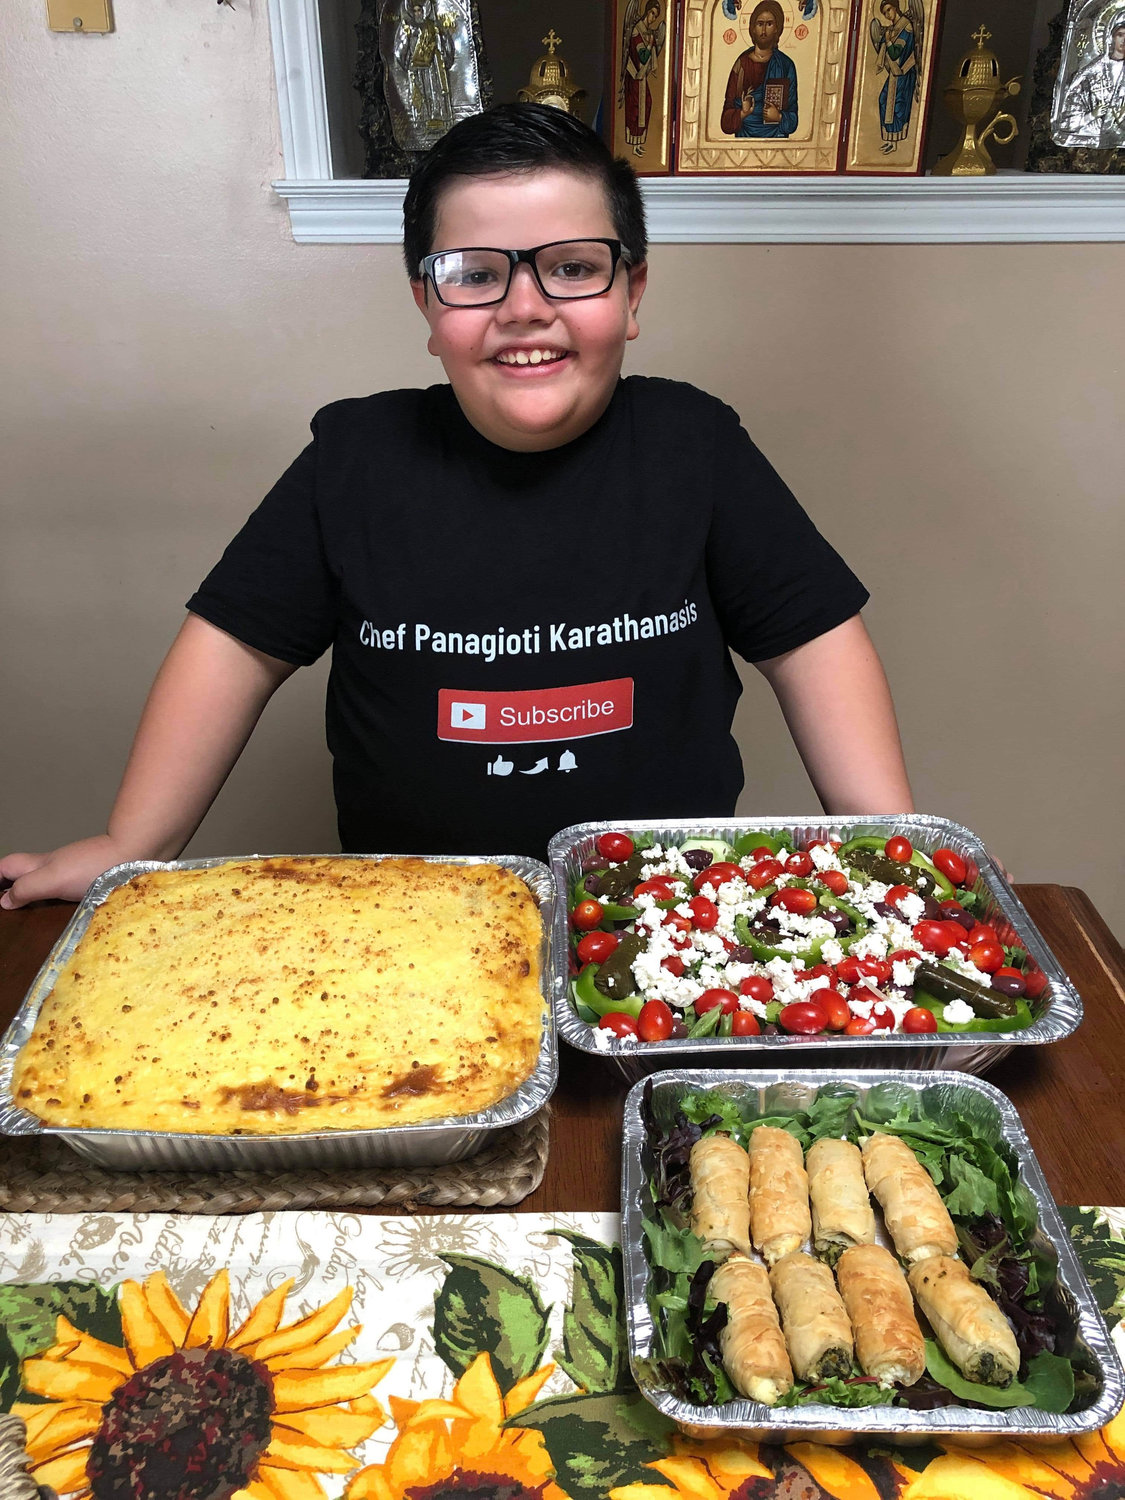 These meals prepared by Panagioti Karathanasis and his mother Stacey Karathanasis were given away to lucky winners on a Facebook contest.